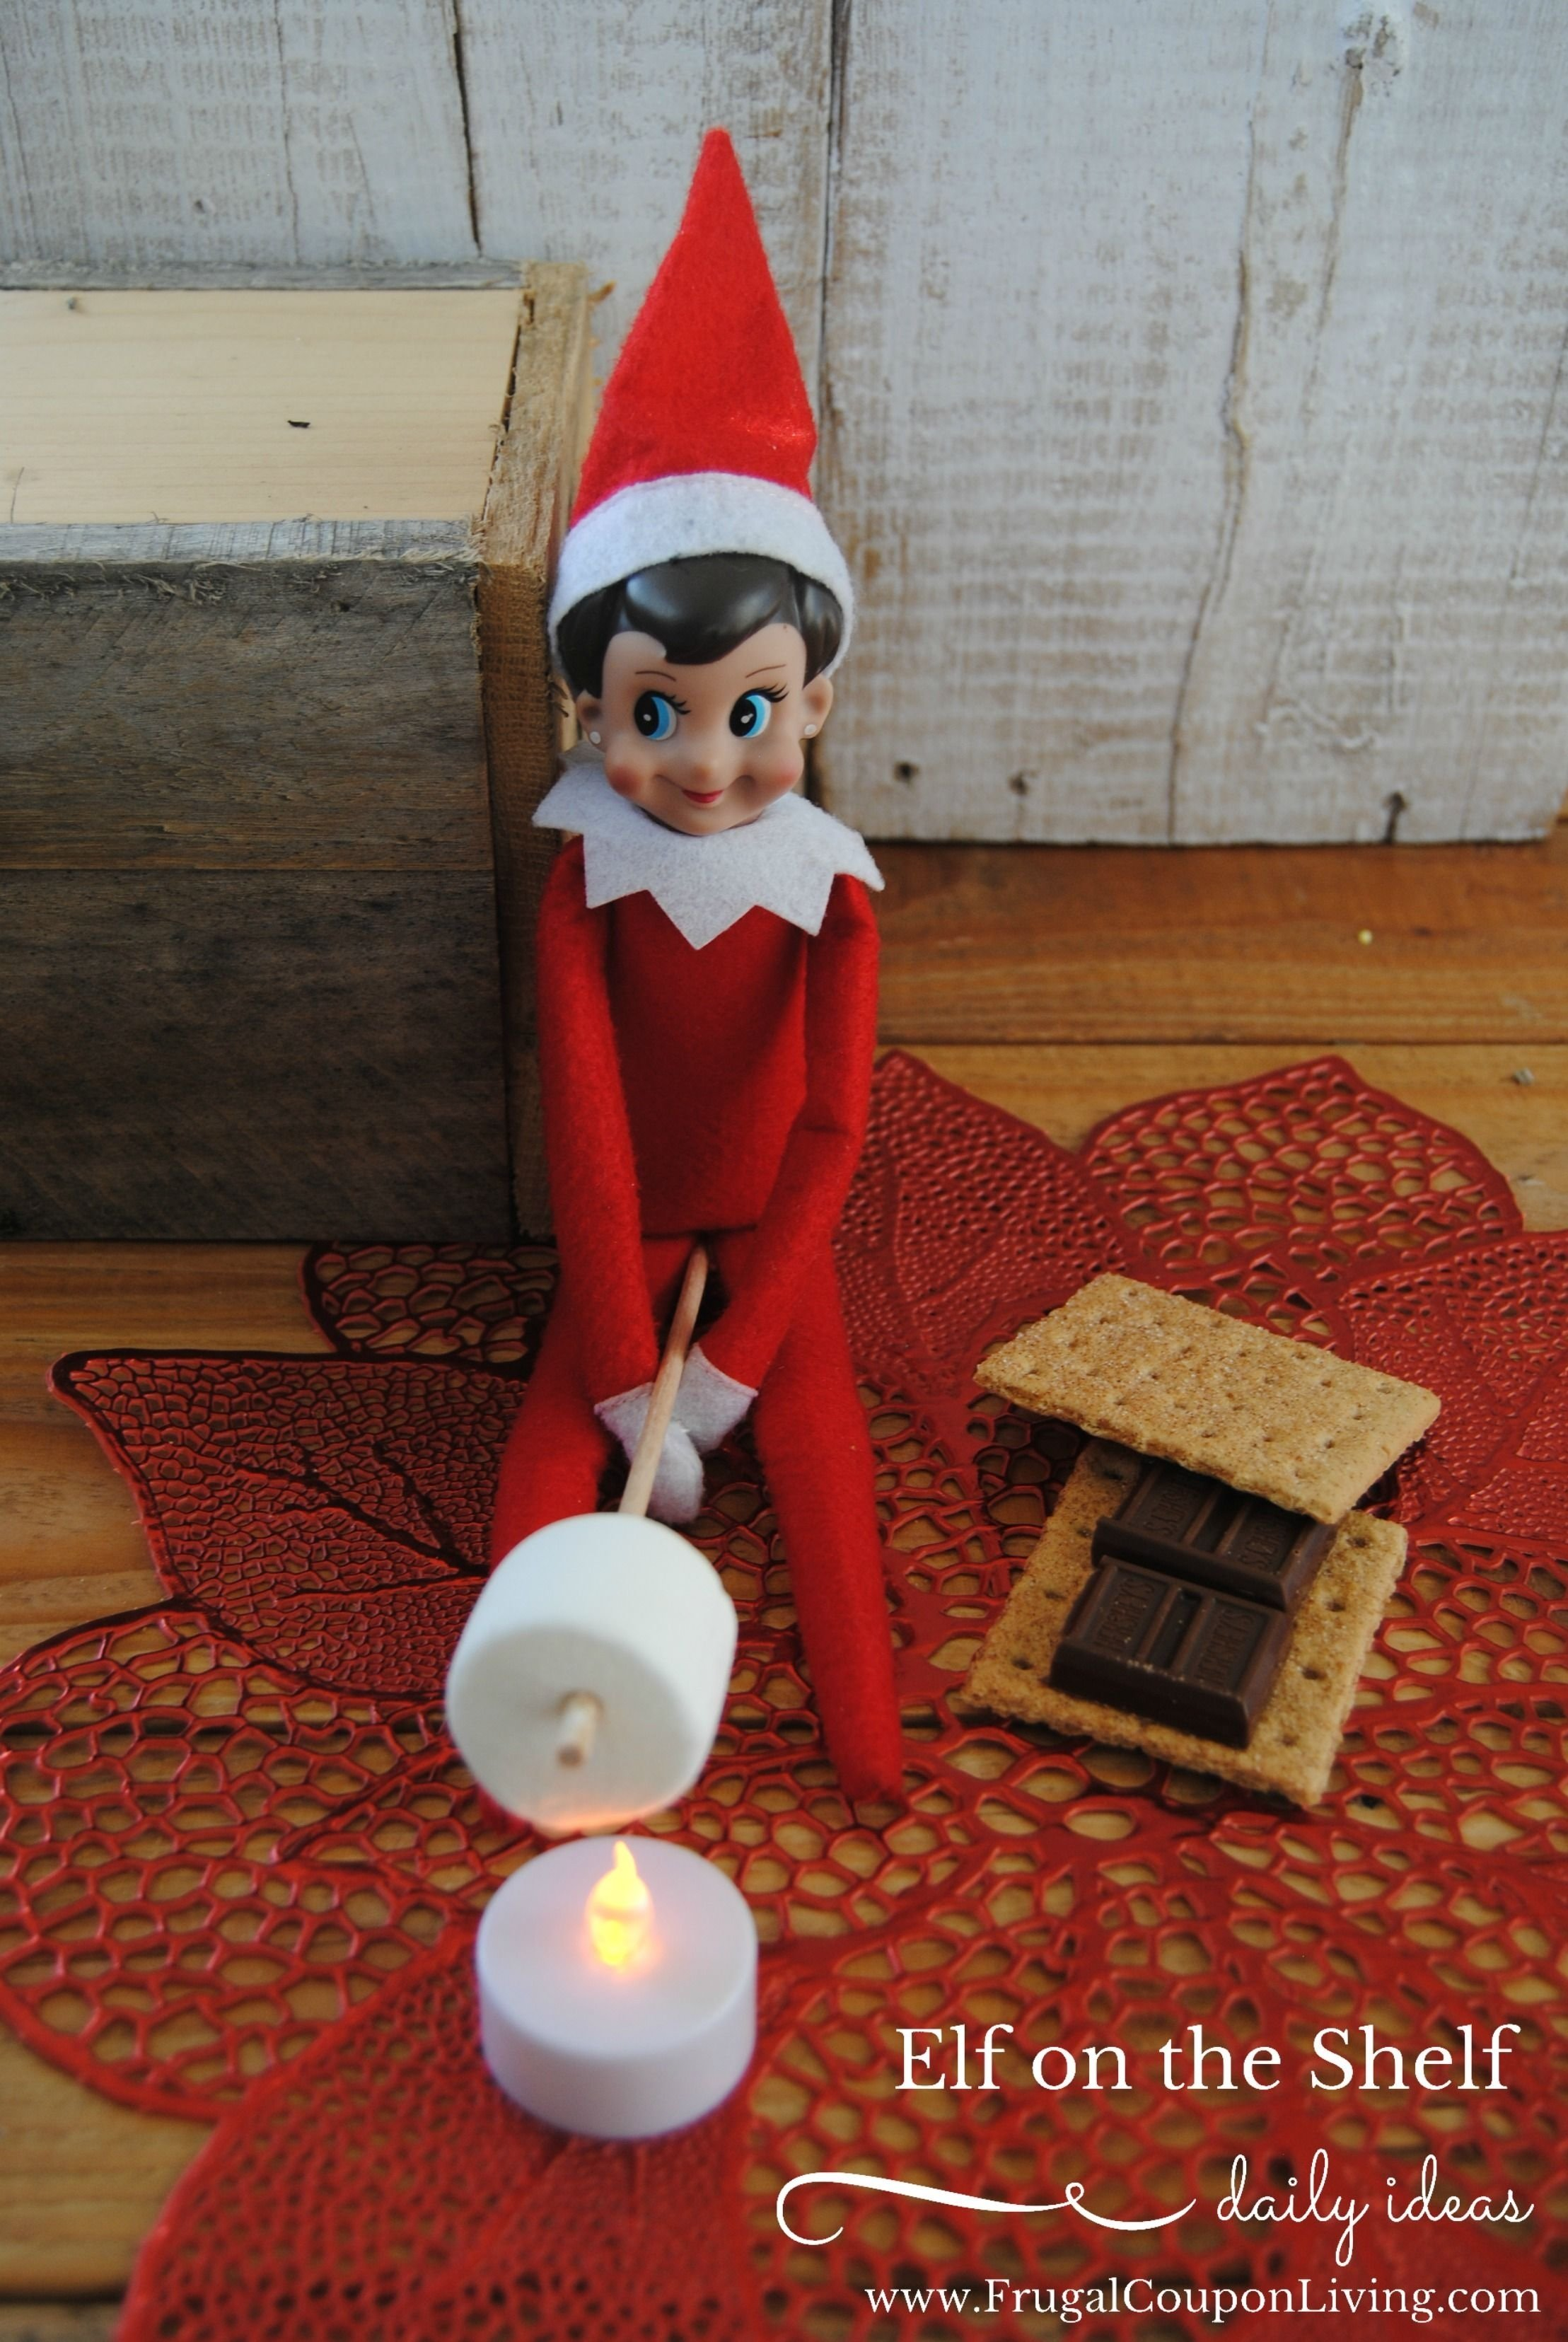 elf on the shelf ideas | shelf ideas, flameless candles and elves